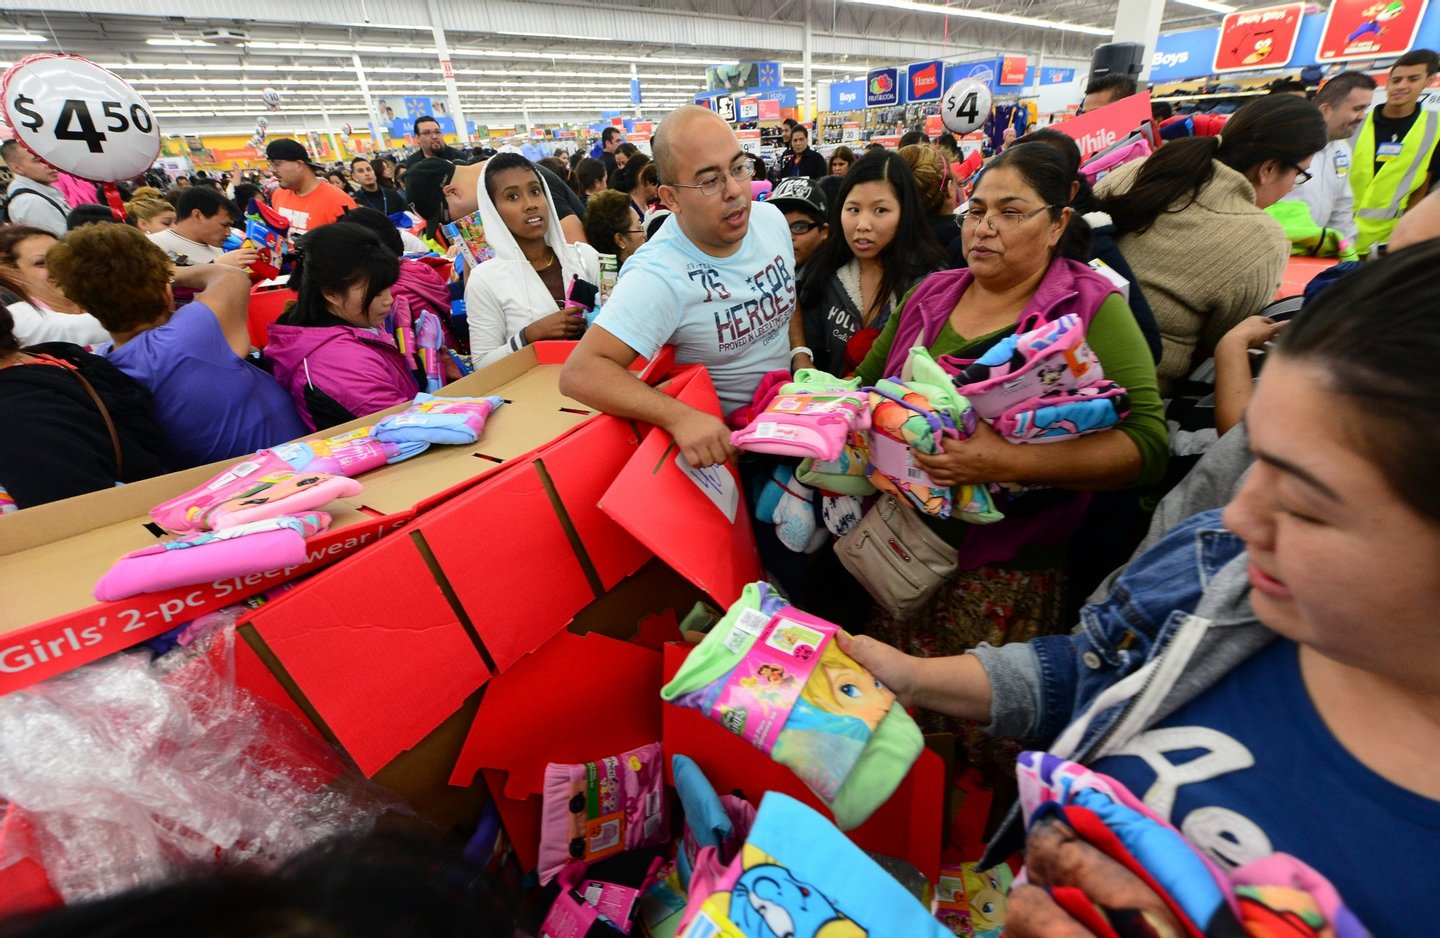 People get an early start on Black Friday shopping deals at a Walmart Superstore on November 22, 2012 in Rosemead, California, as many retailers stayed opened during the Thanksgiving celebrations, evidence that even this cherished American family holiday is falling prey to the forces of commerce. AFP PHOTO / Frederic J. BROWN (Photo credit should read FREDERIC J. BROWN/AFP/Getty Images)